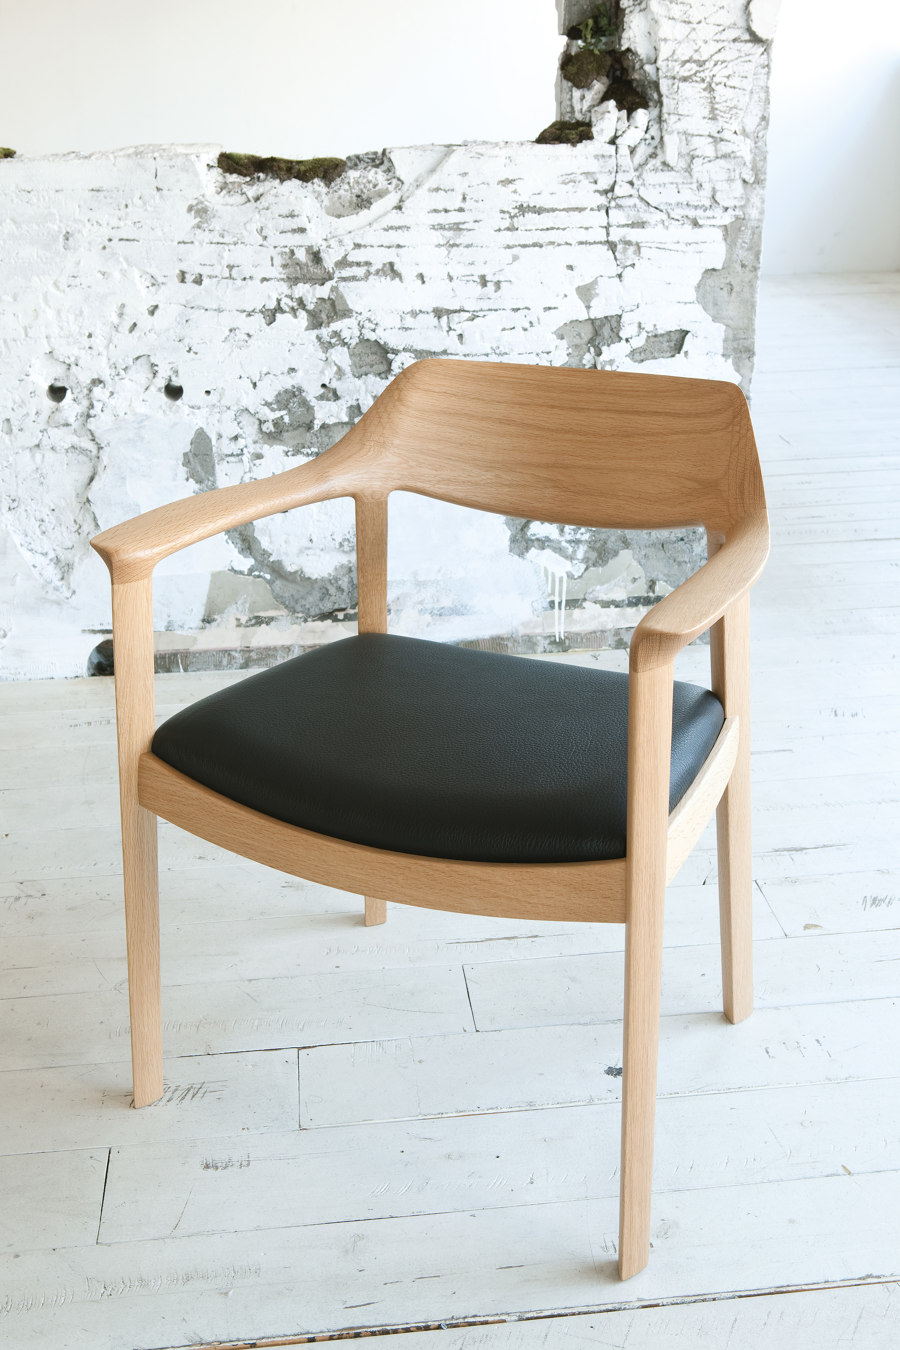 When is a chair not a chair?: Ilse Crawford x Conde House | News